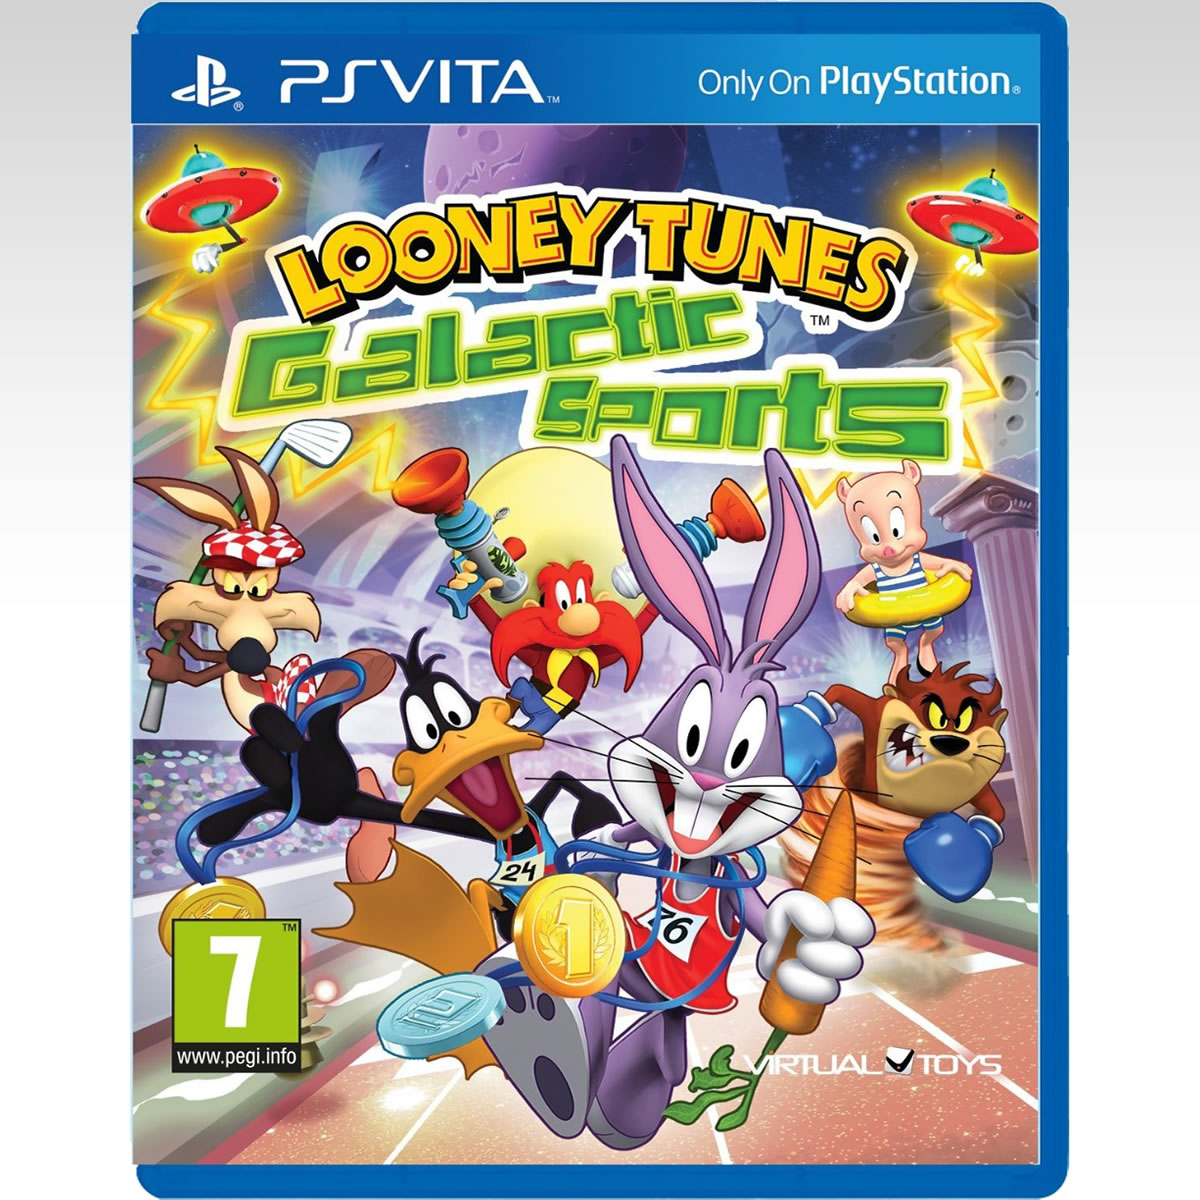 LOONEY TUNES GALLACTIC SPORTS [ΕΛΛΗΝΙΚΟ] (PS VITA)